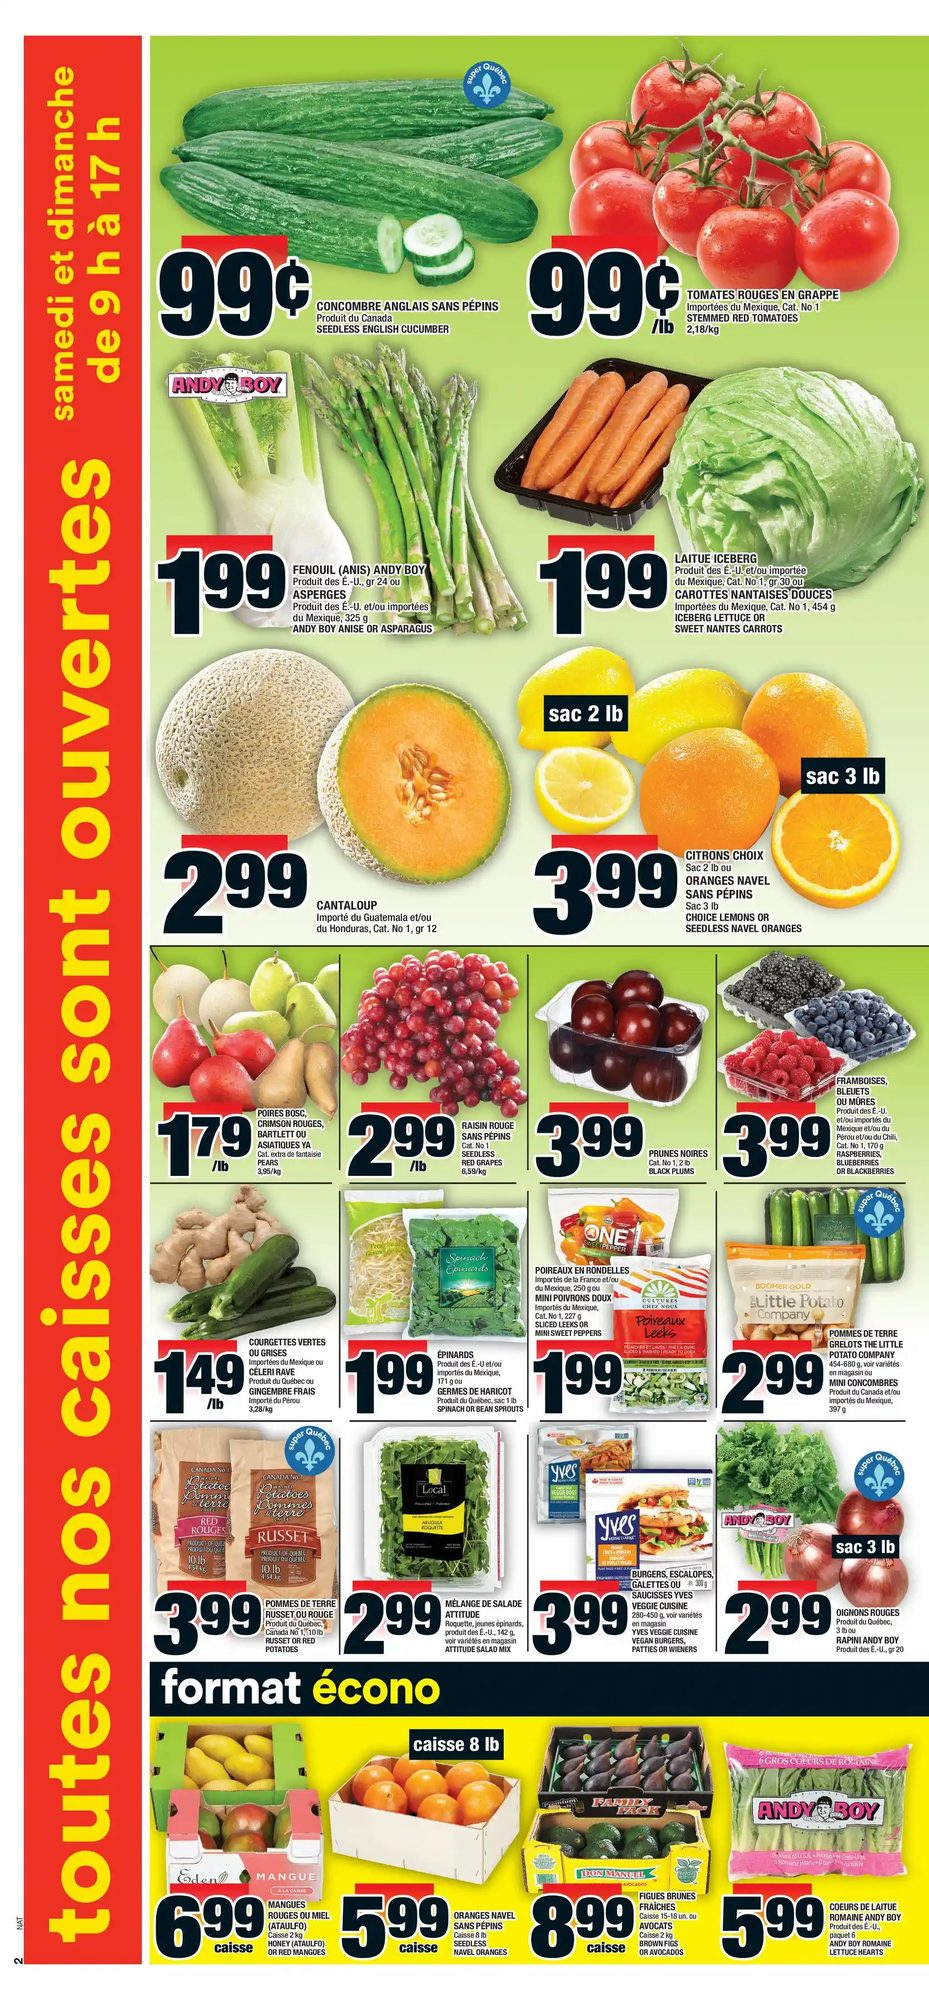 Super C - Weekly Flyer Specials - Page 5